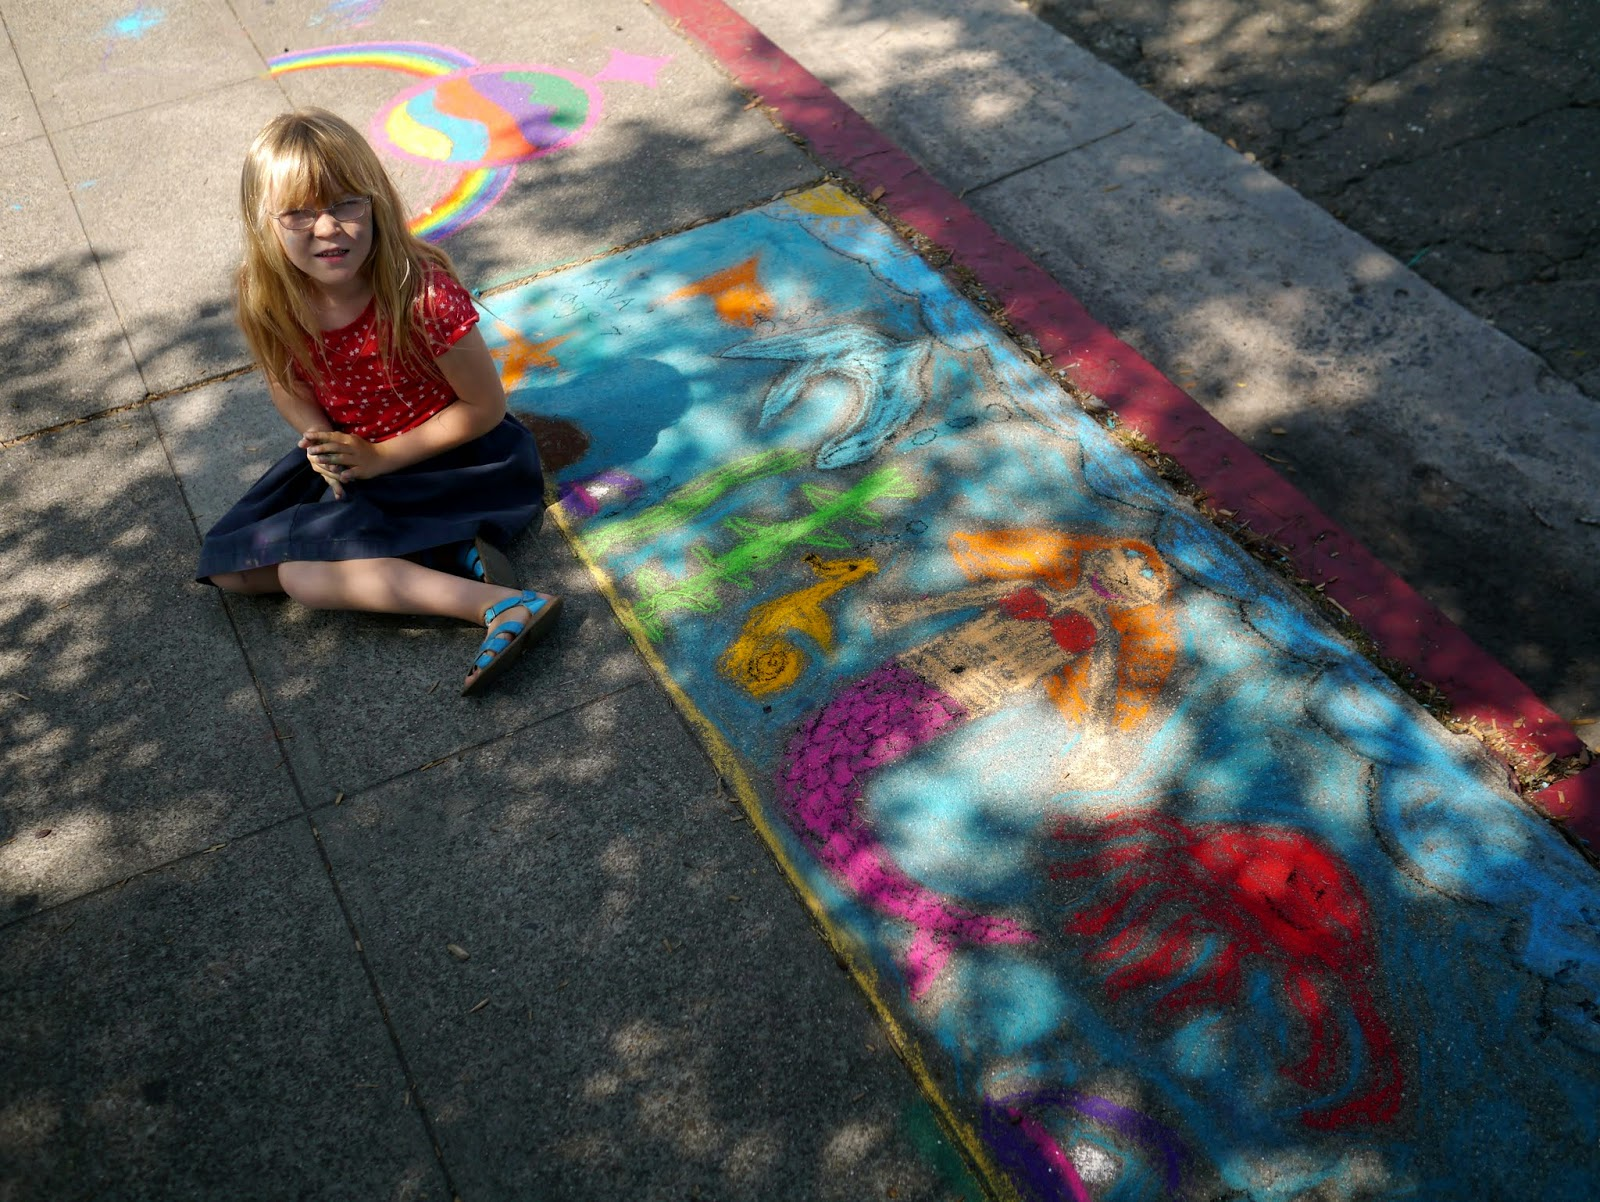 Photo: http://www.littlehiccups.net/2014/06/berkeley-chocolate-and-chalk-art.html